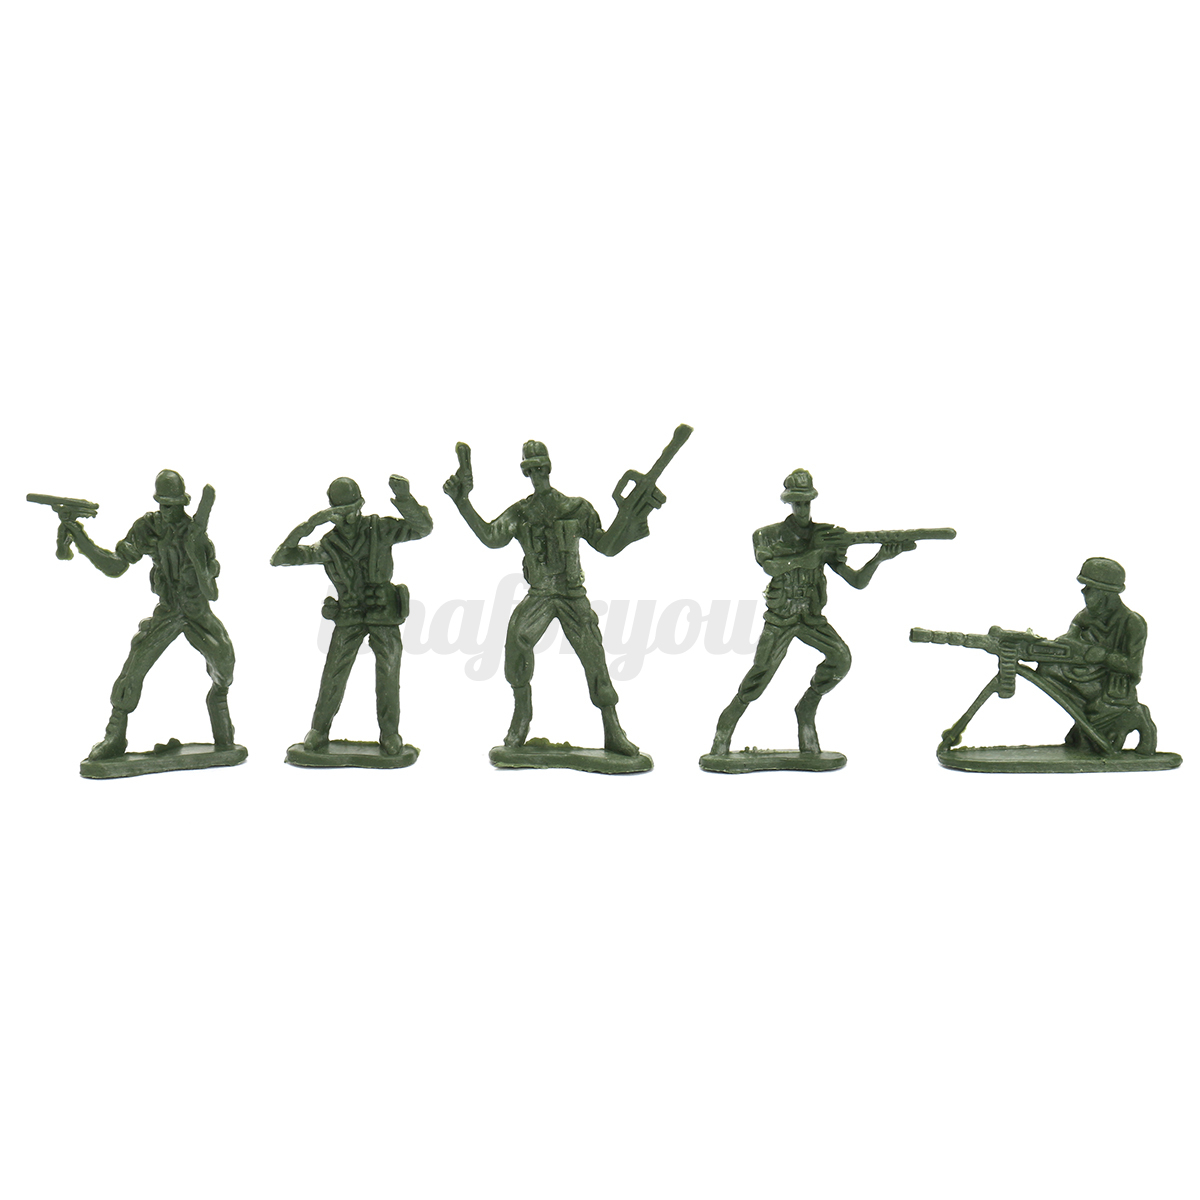 238PCS-Military-Plastic-Soldiers-Army-Men-Figures-Tanks-Accessories-Play-Set-Toy thumbnail 12